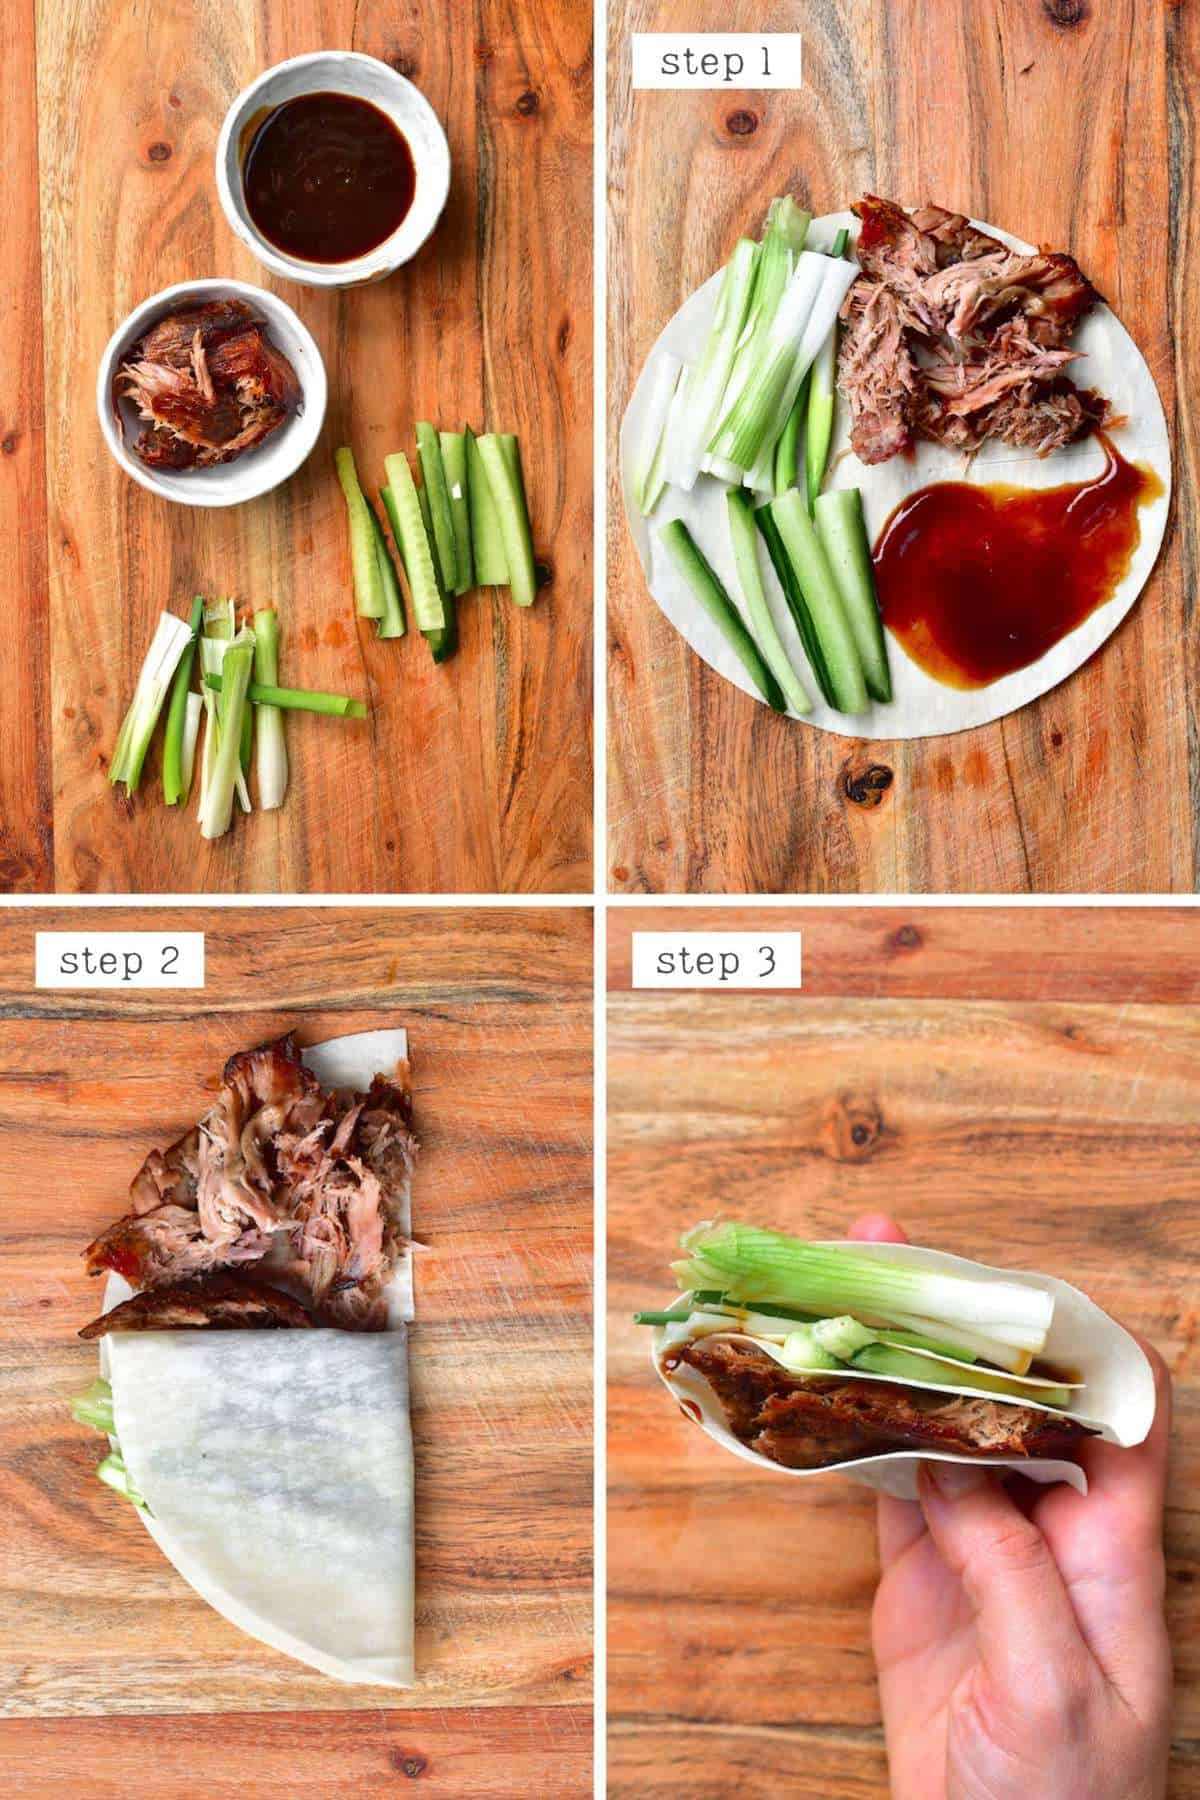 Steps for making a shredded duck tortilla - China tortilla